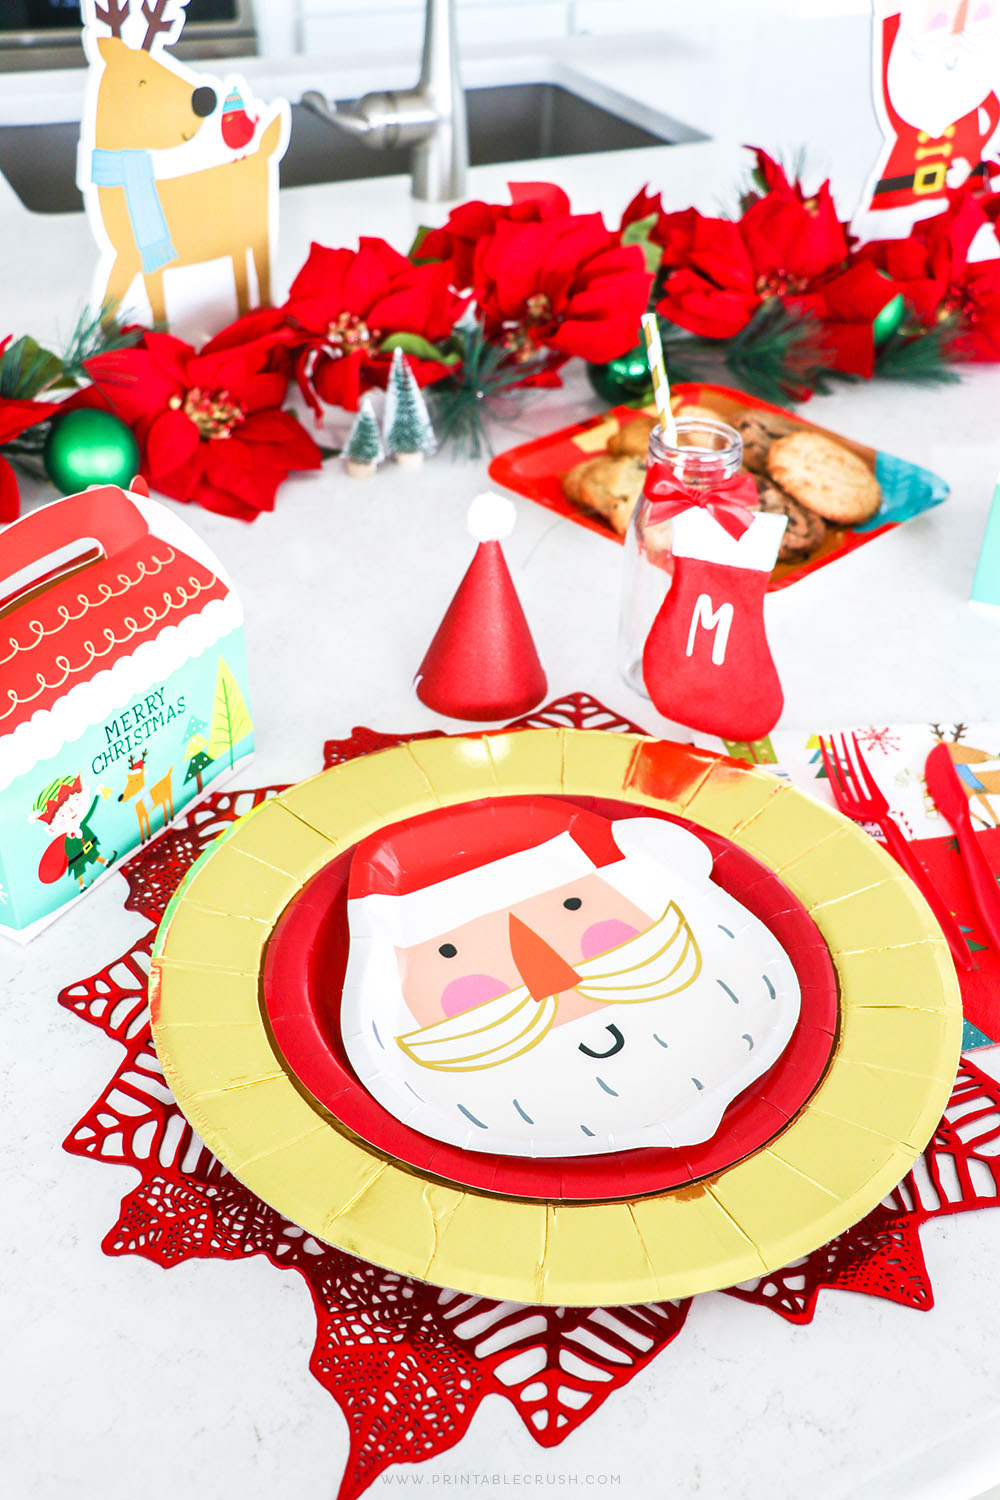 Santa Place Setting - Santa Party Decor - Santa Party Ideas - Santa Cookie Party - Christmas Cookie Party - Printable Crush